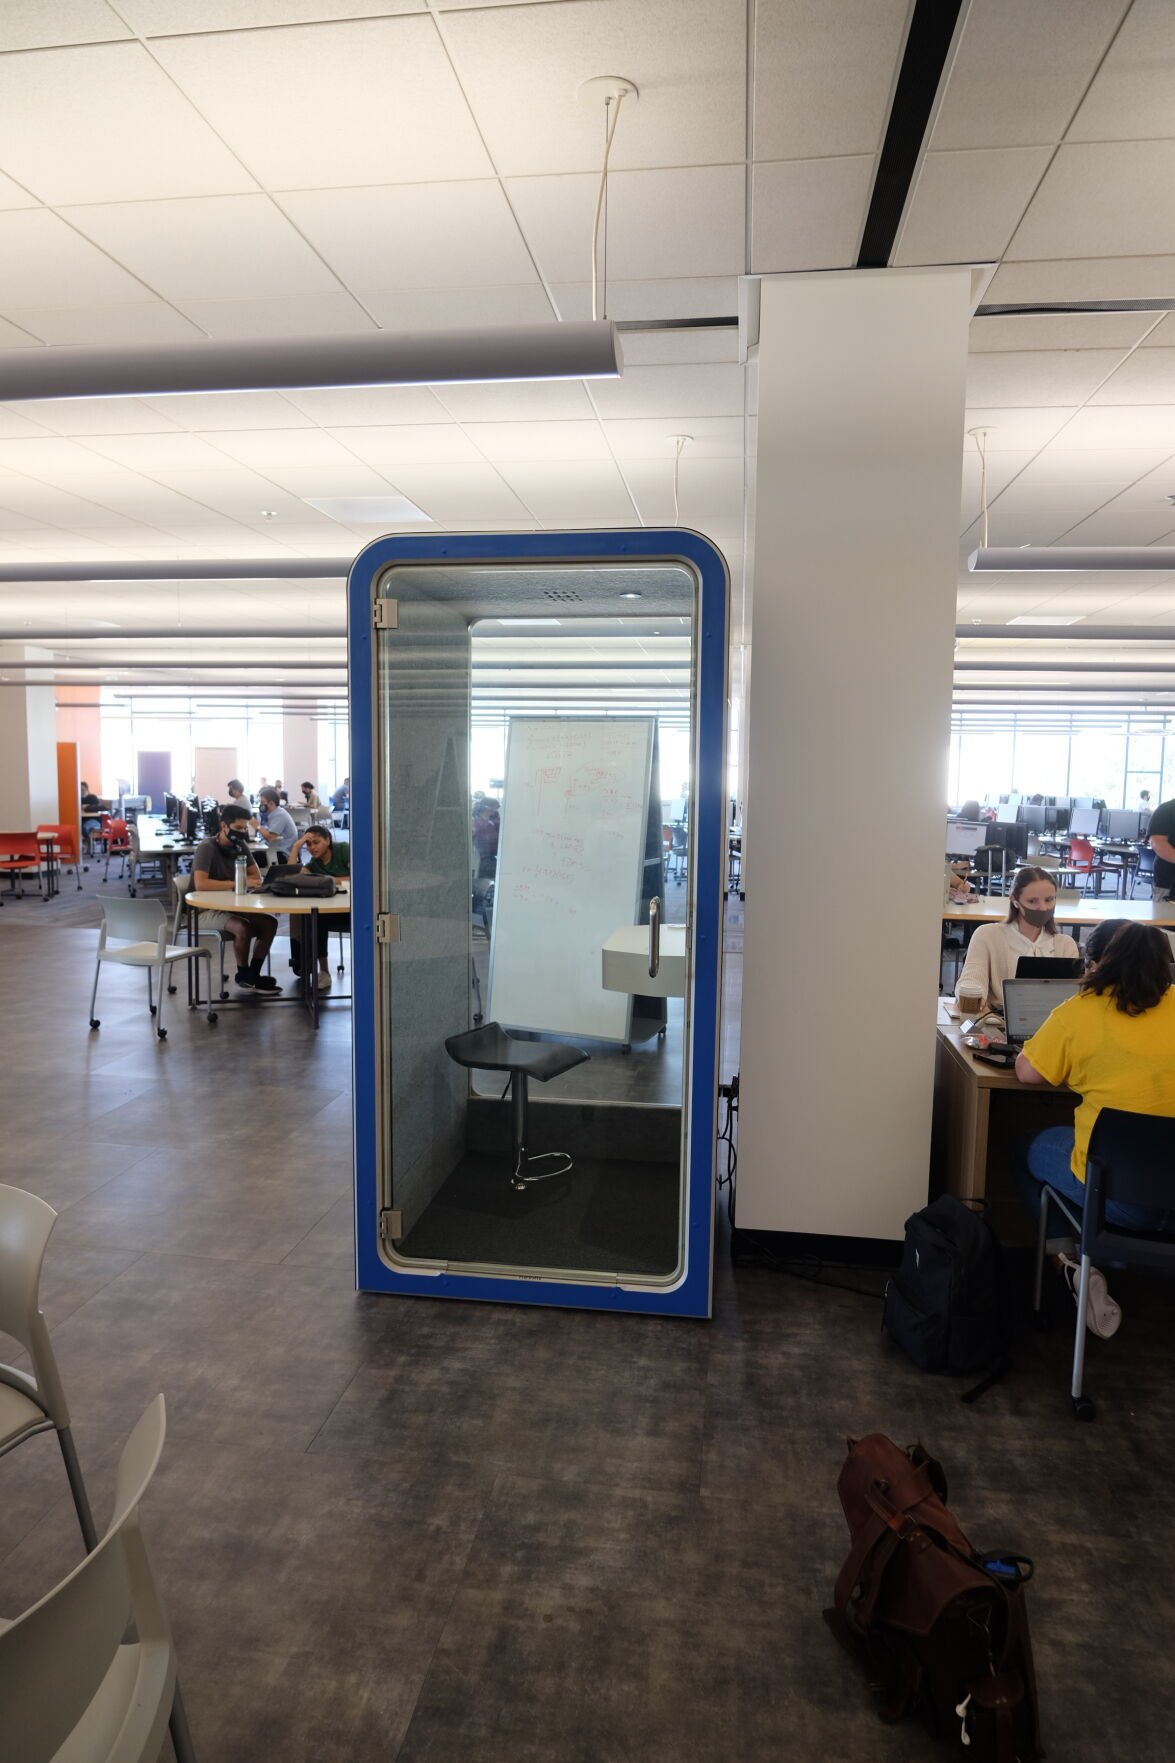 phone booth study areas